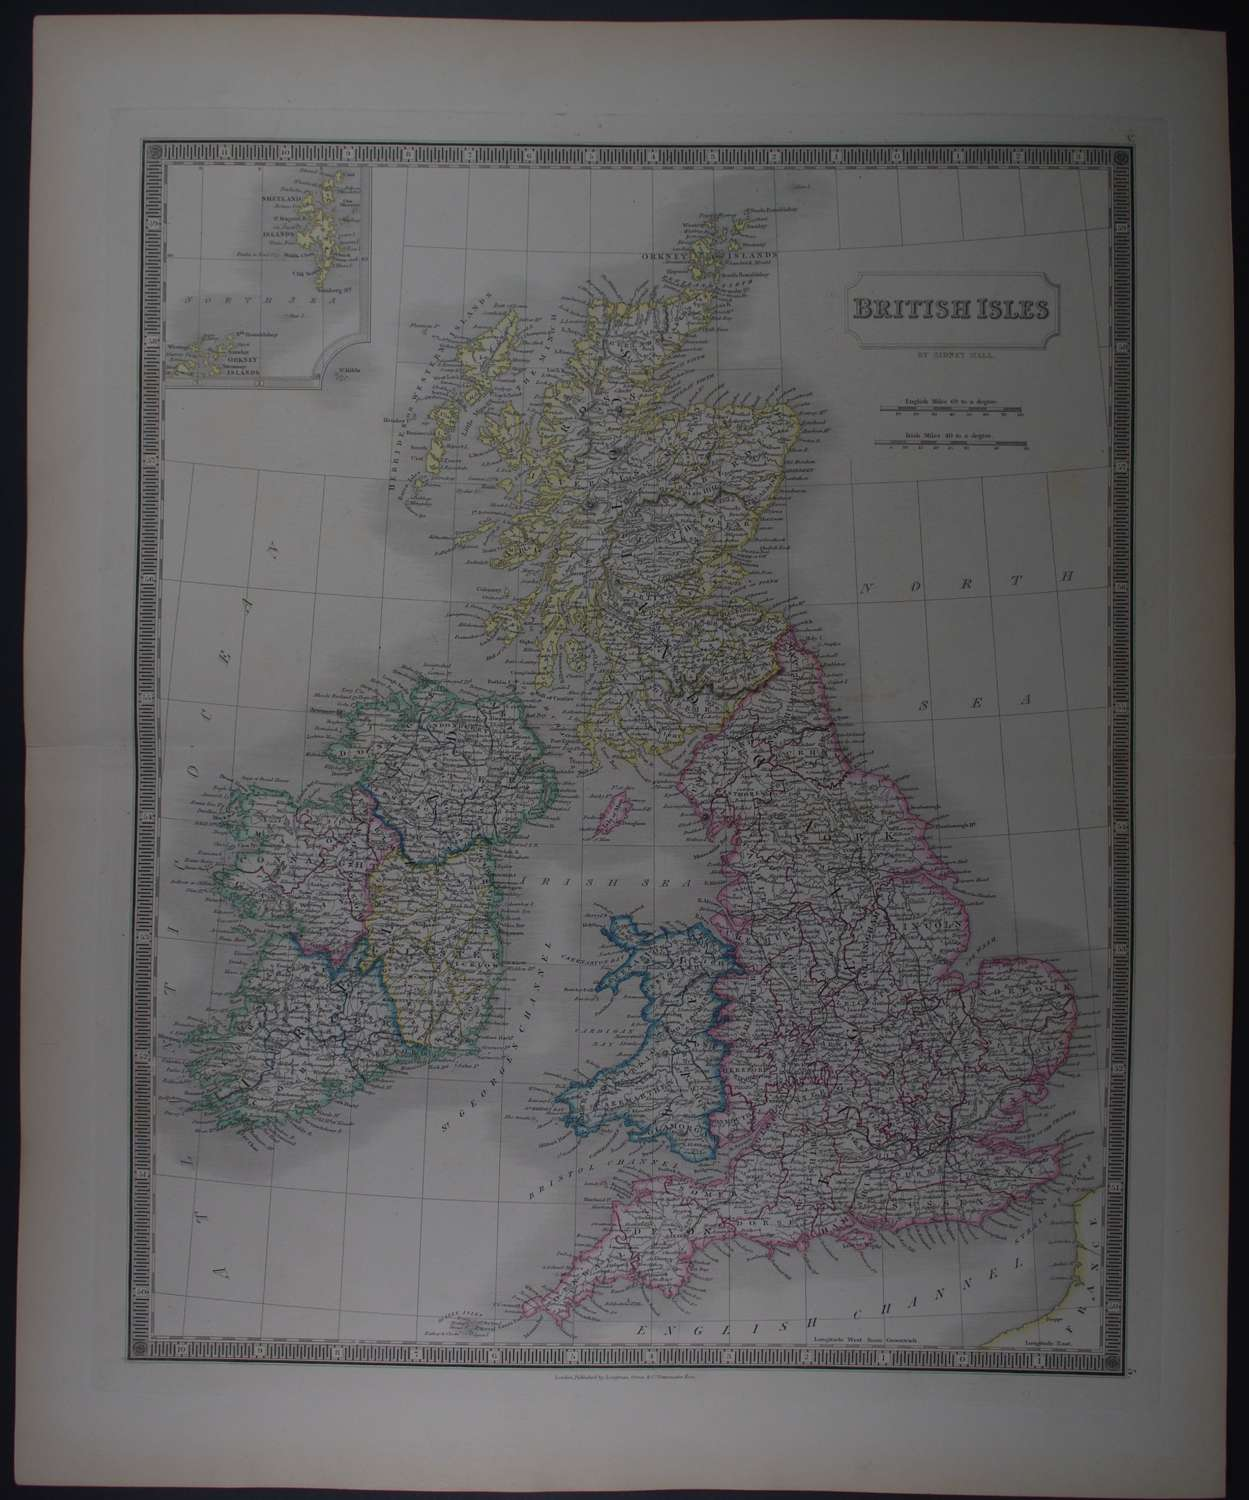 British Isles by Sidney Hall